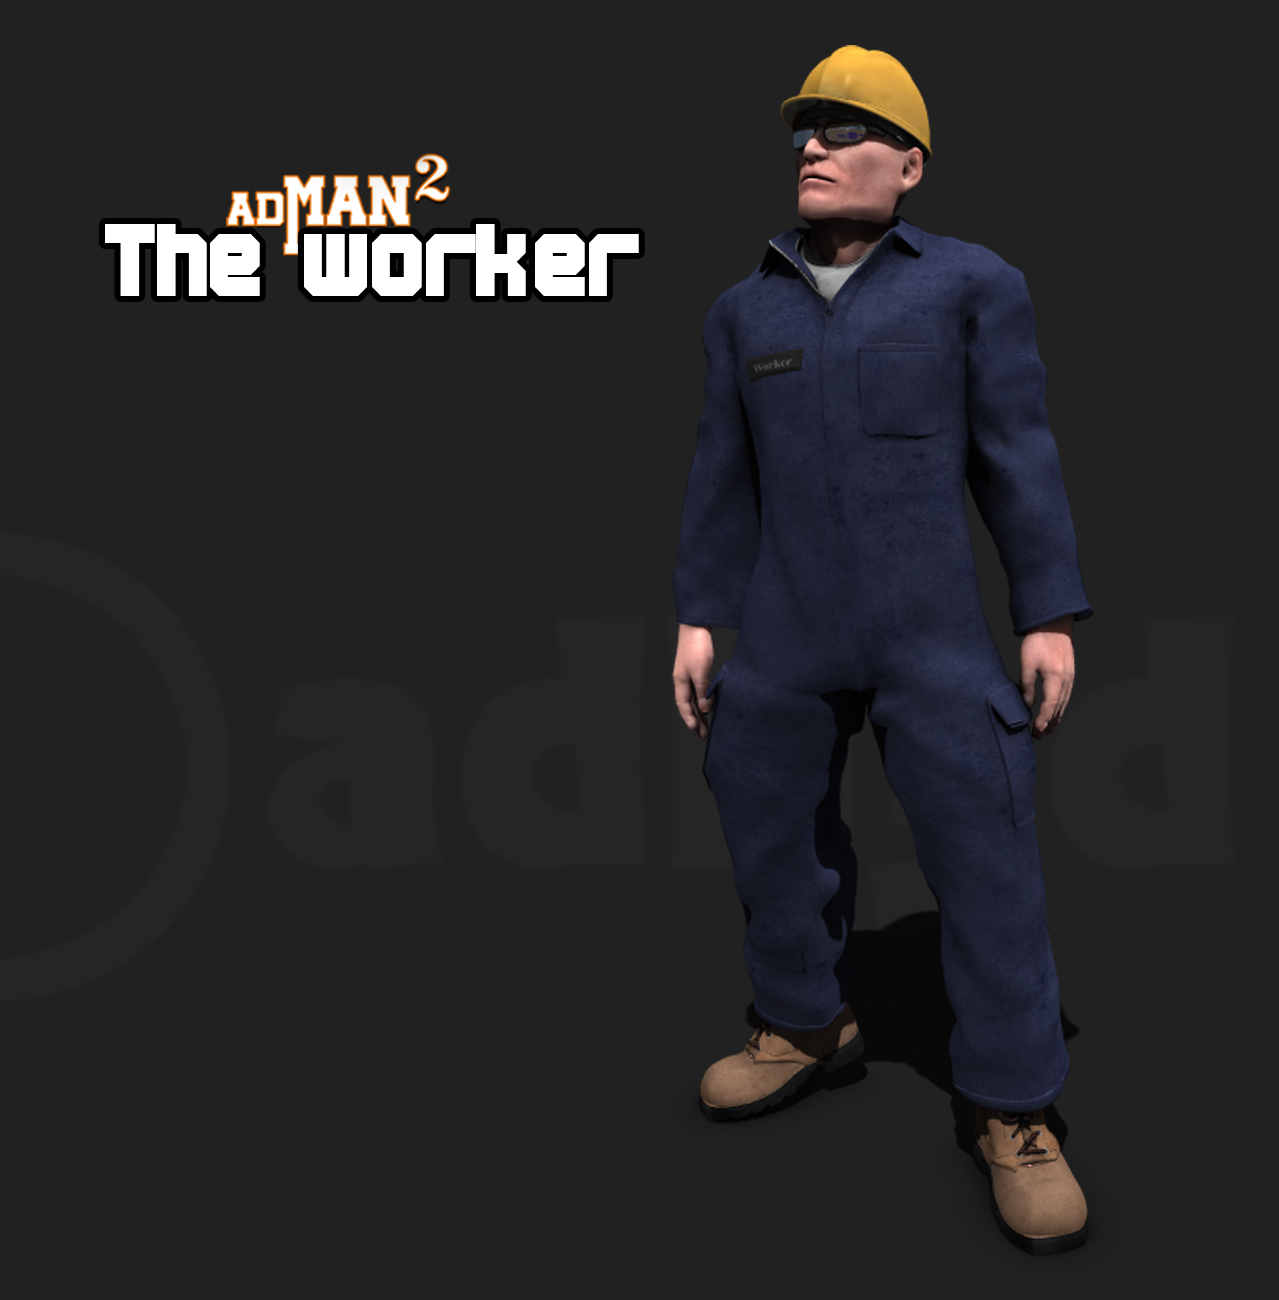 The worker for adman v2